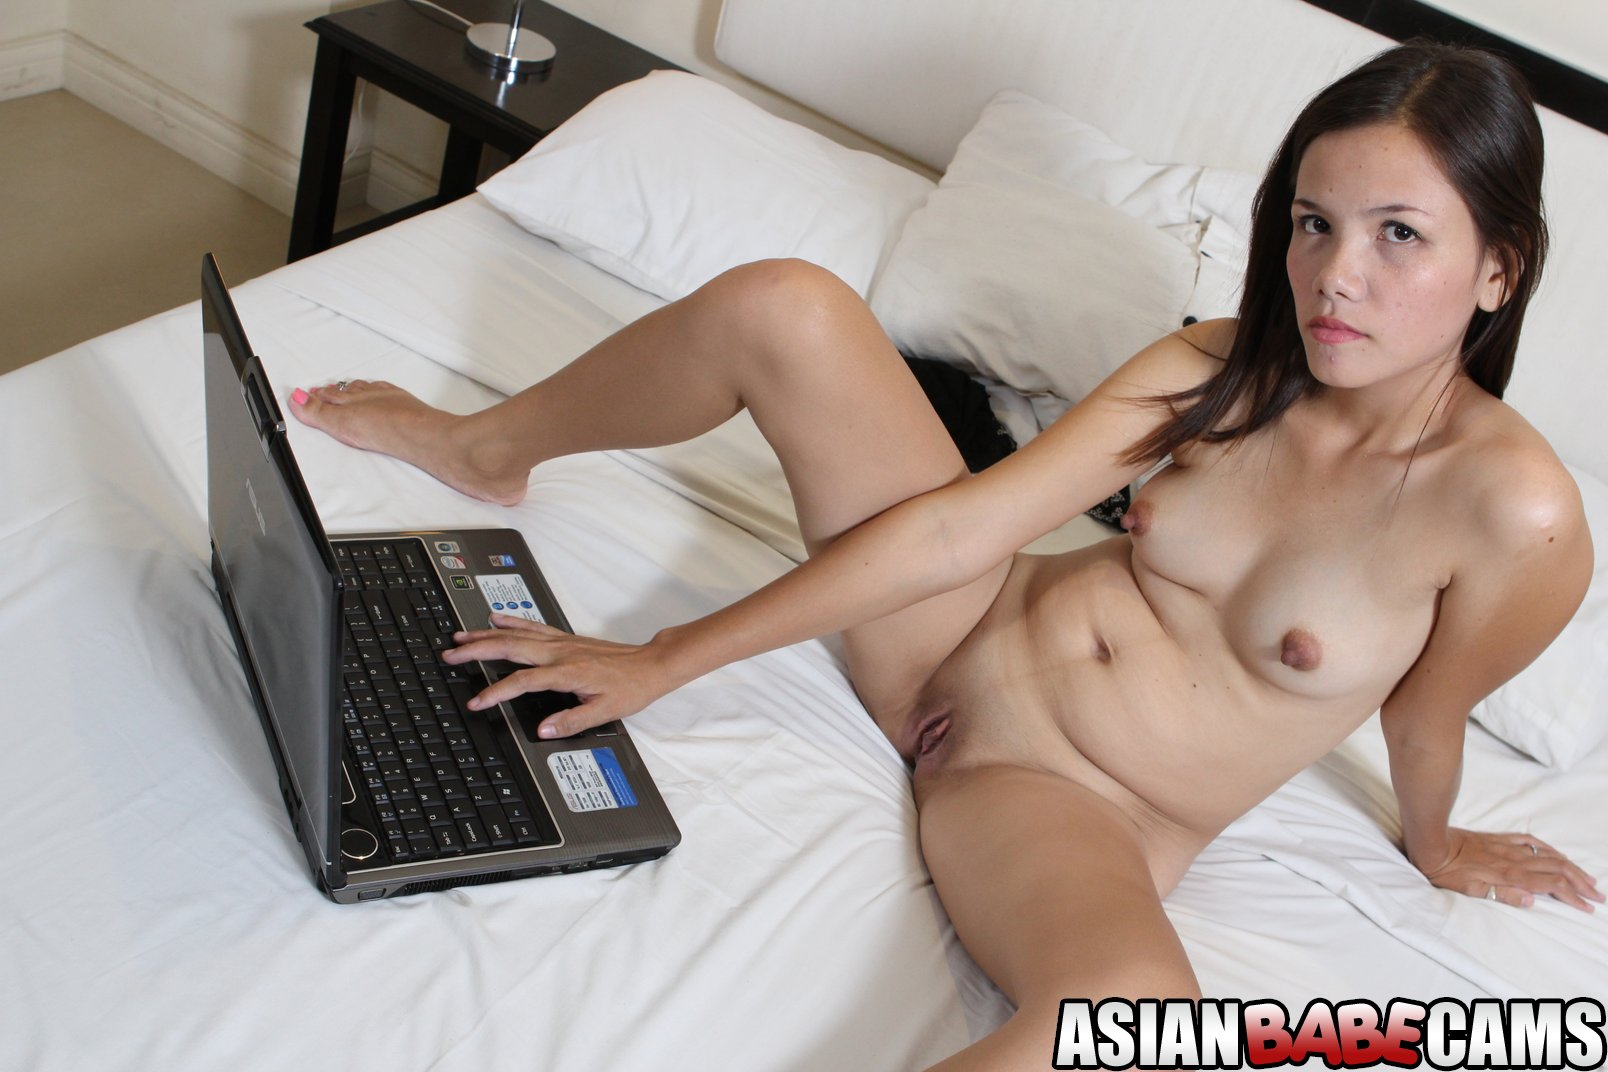 Amateur blackmail video cheating girlfriend